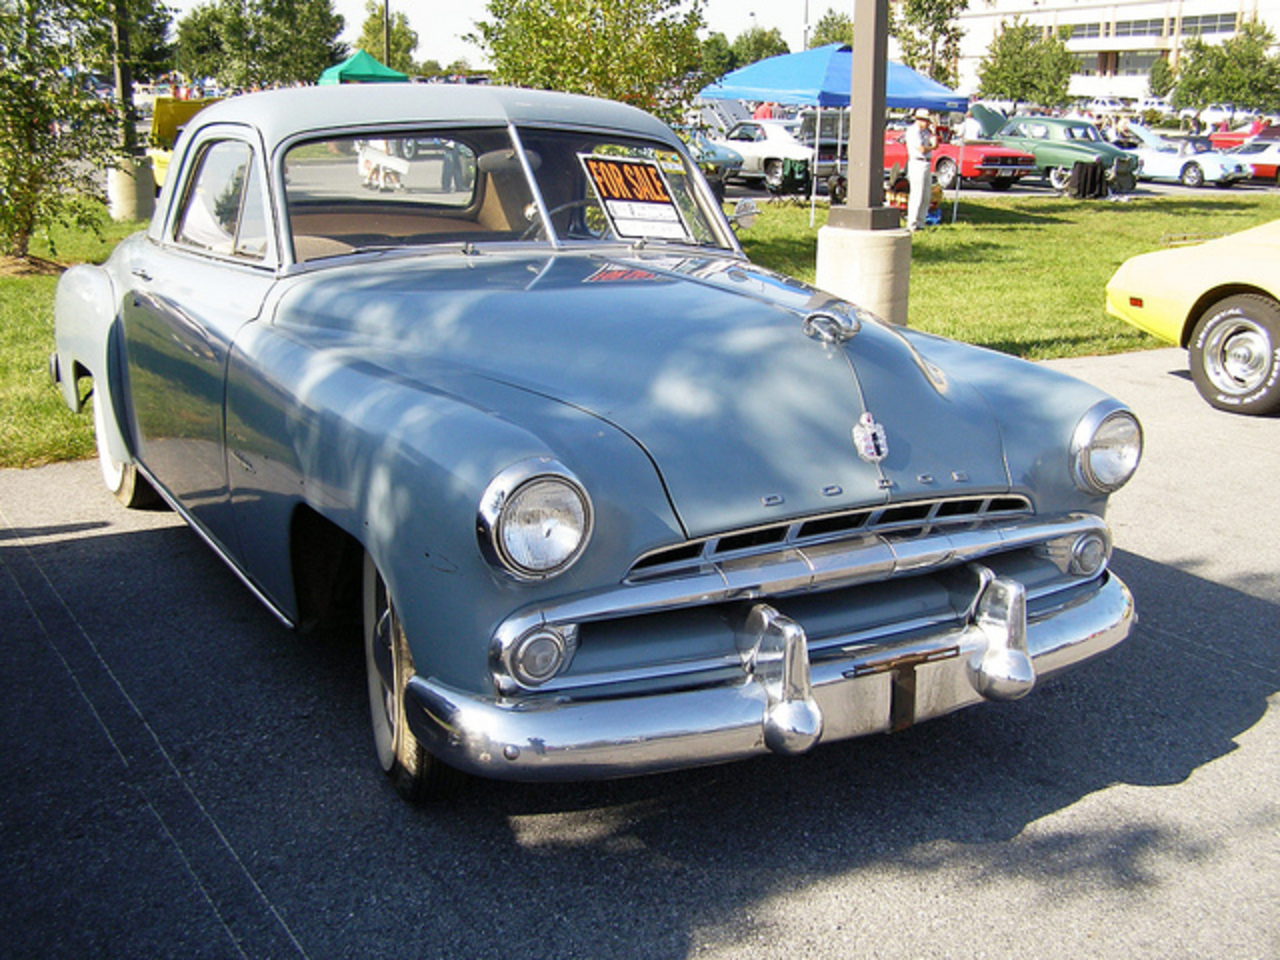 1952 Dodge Business Coupe | Flickr - Photo Sharing!